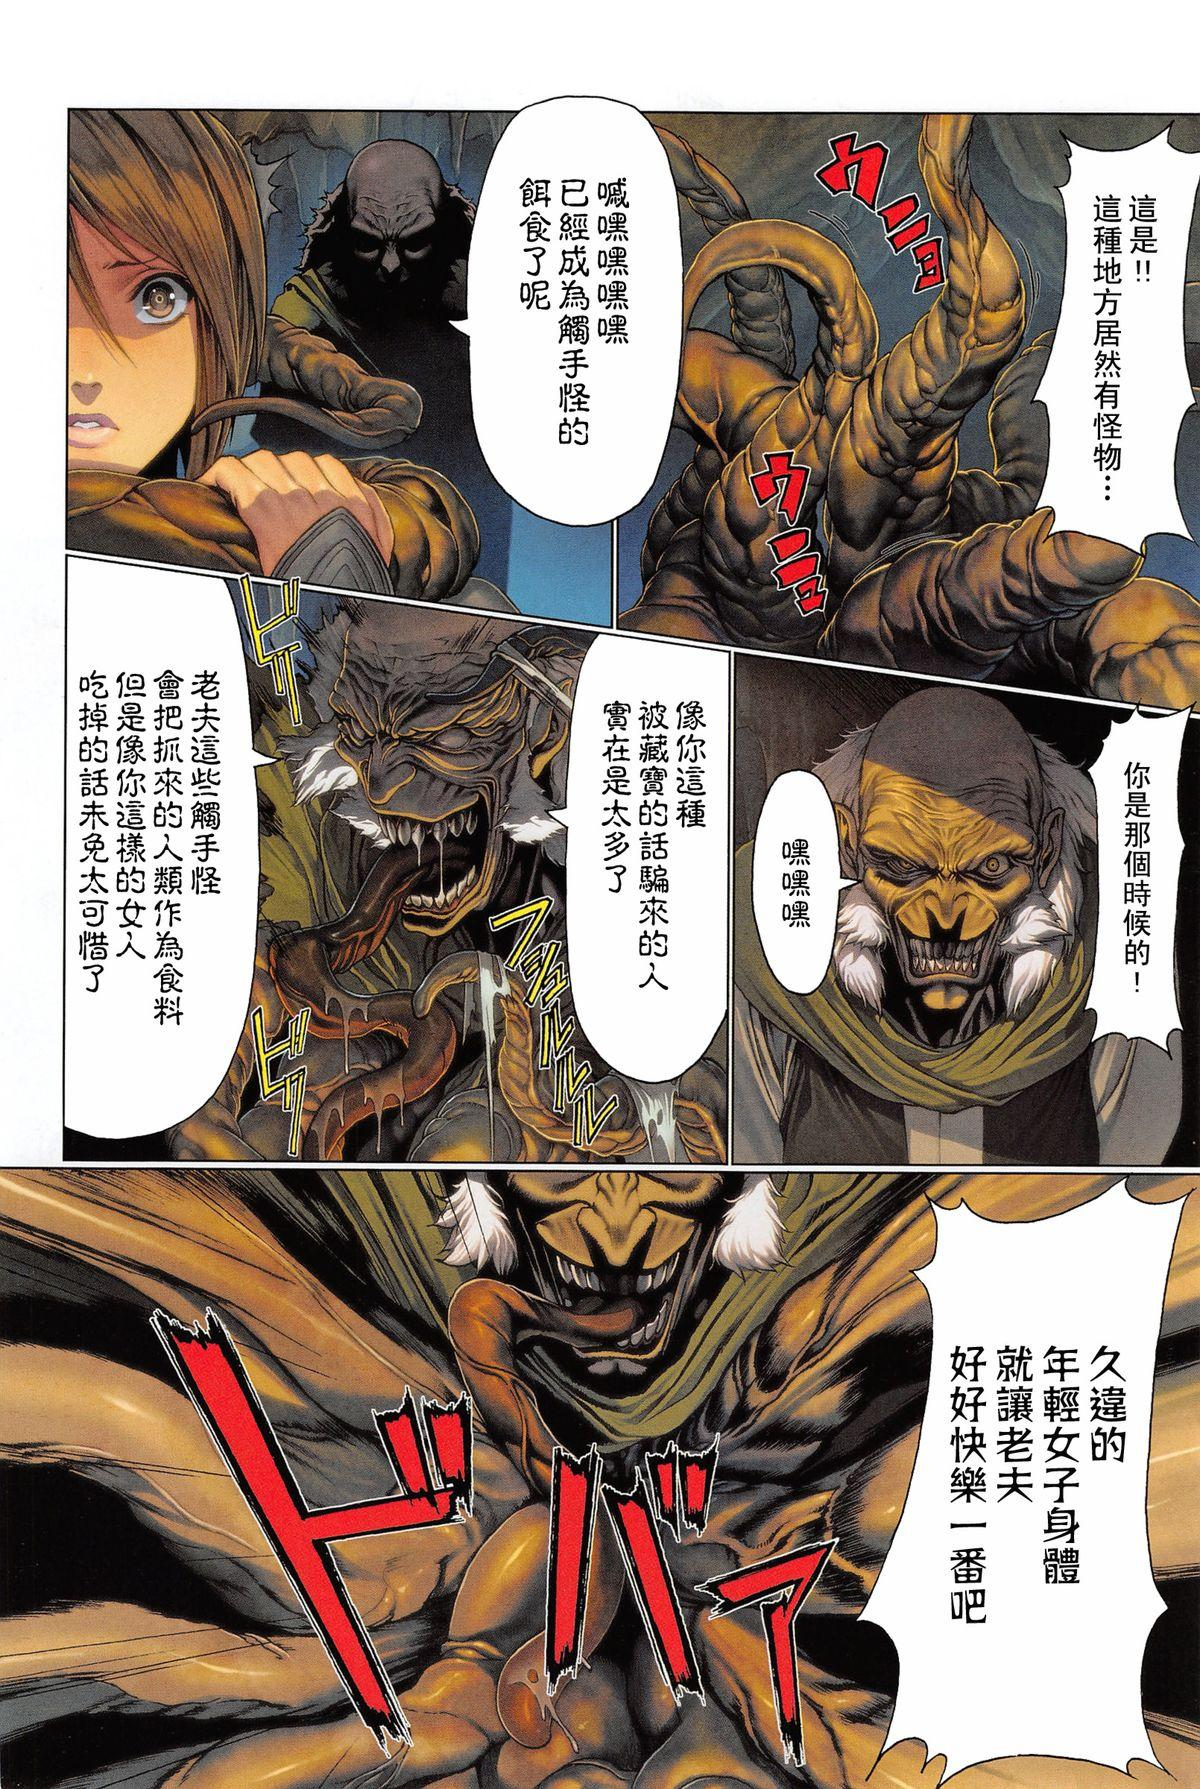 [Homare] Ma-Gui -DEATH GIRL- Show Hen (COMIC Anthurium 023 2015-03) [Chinese] [里界漢化組] 3